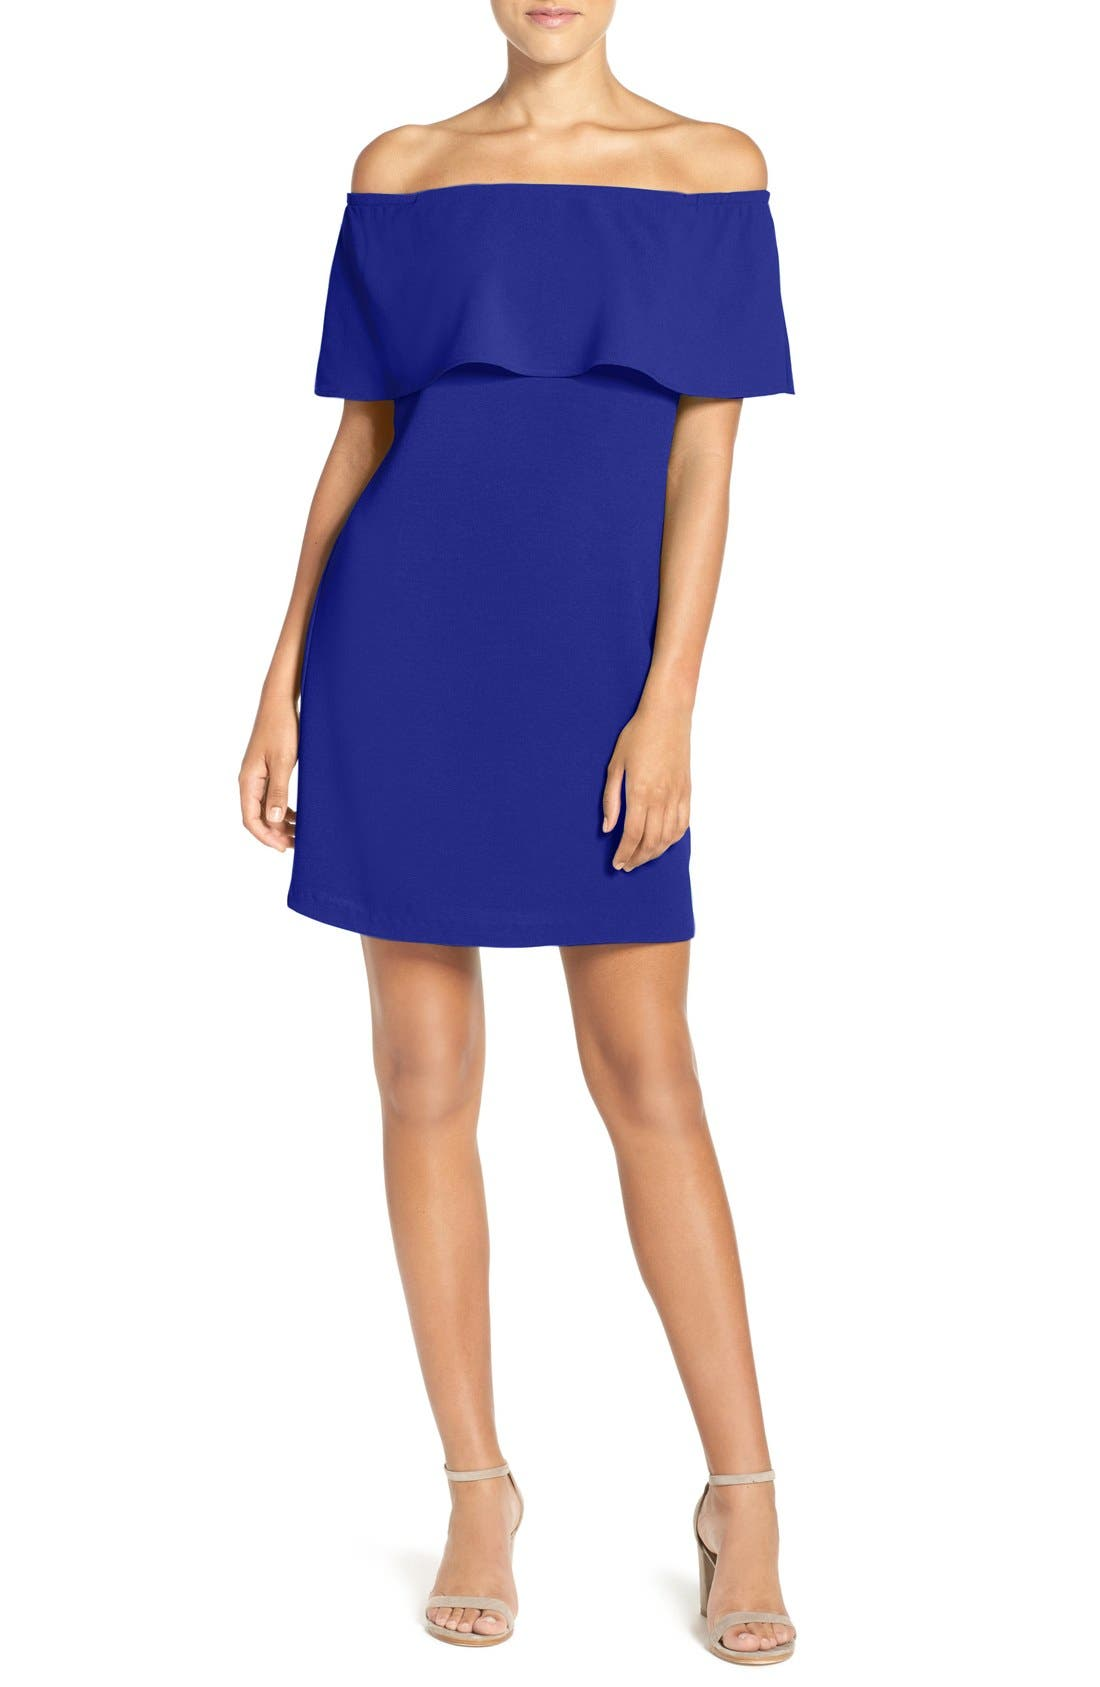 Alternate Image 1 Selected - Charles Henry Off the Shoulder Dress (Regular & Petite)